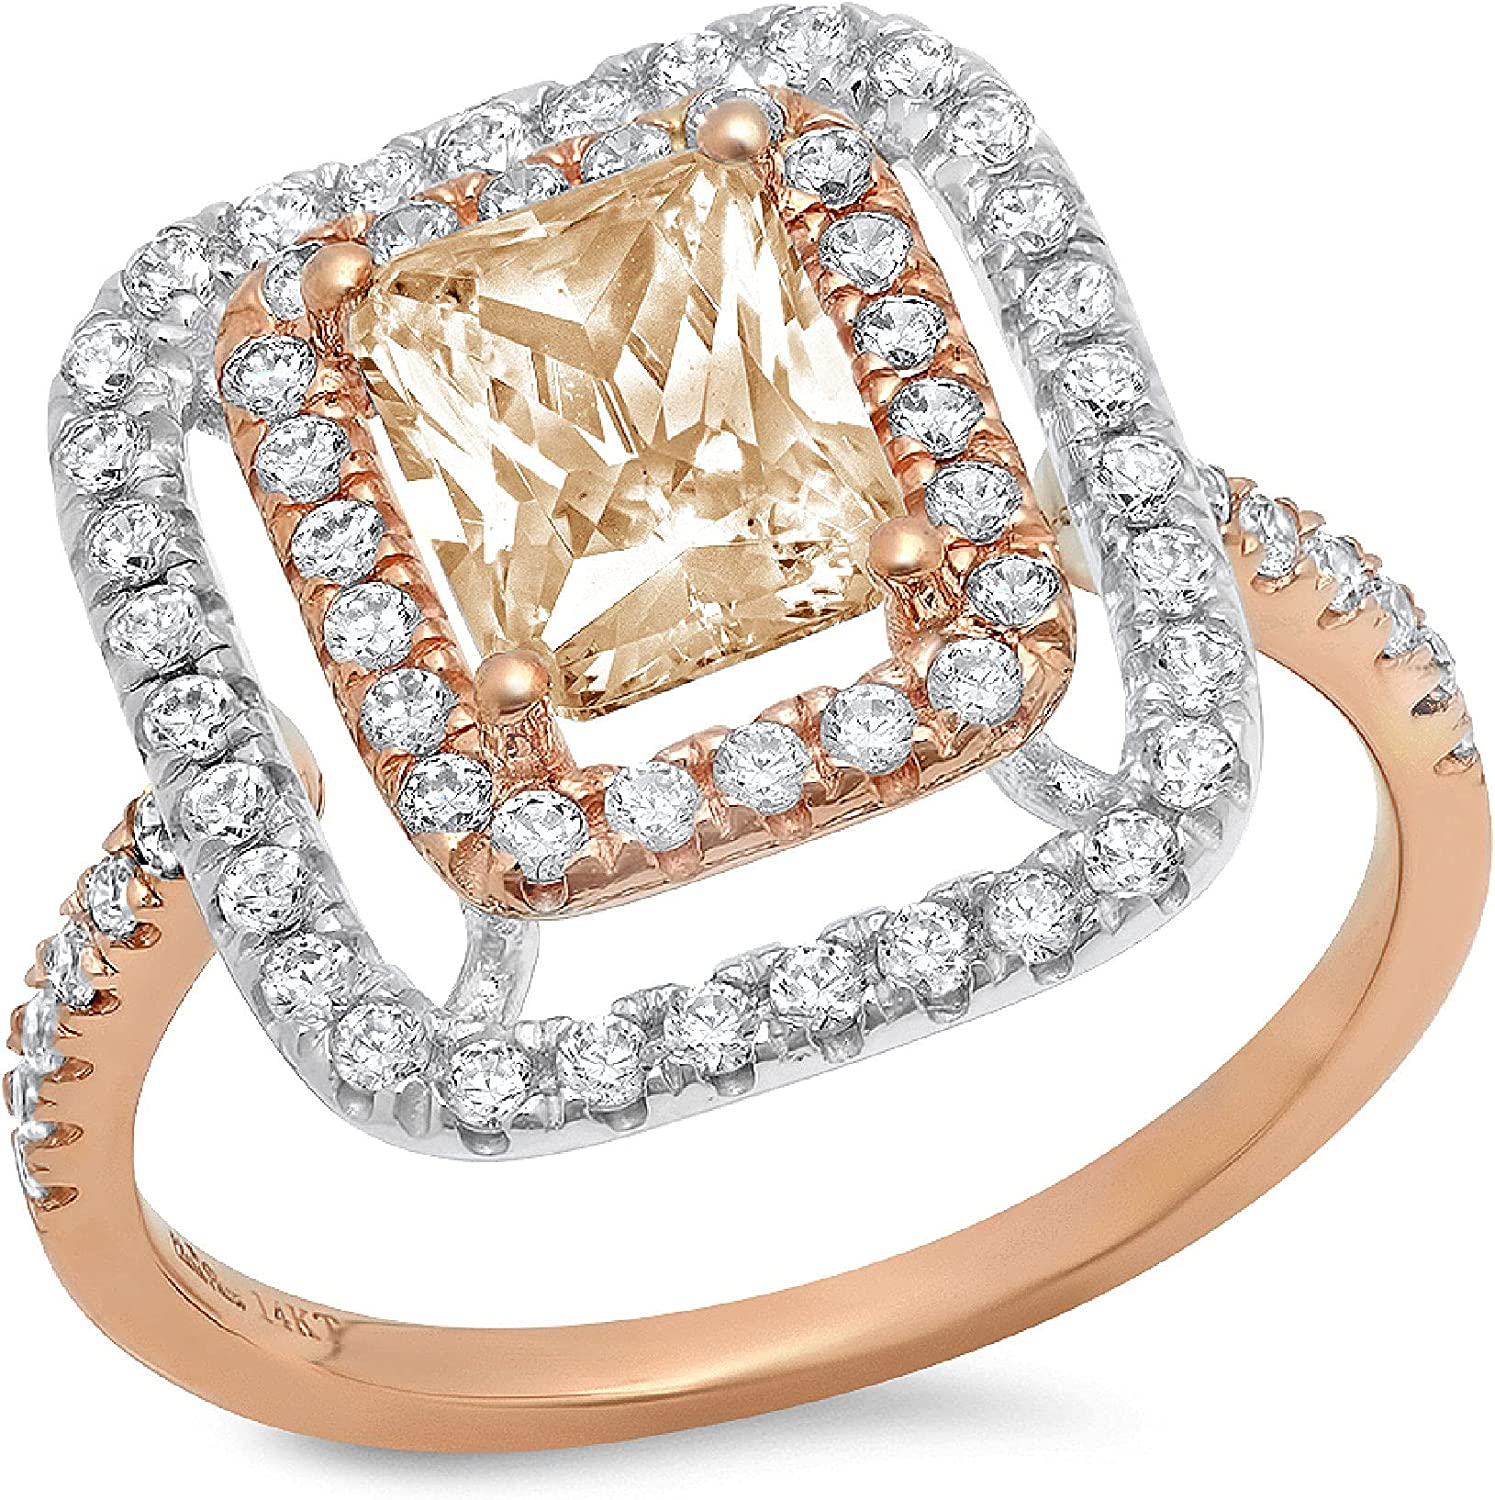 Clara Pucci 2.76 ct Emerald Cut Double Halo Solitaire Accent Stunning Genuine Flawless Natural Brown Morganite Gem Designer Modern Statement Ring Solid 18K 2 tone Gold